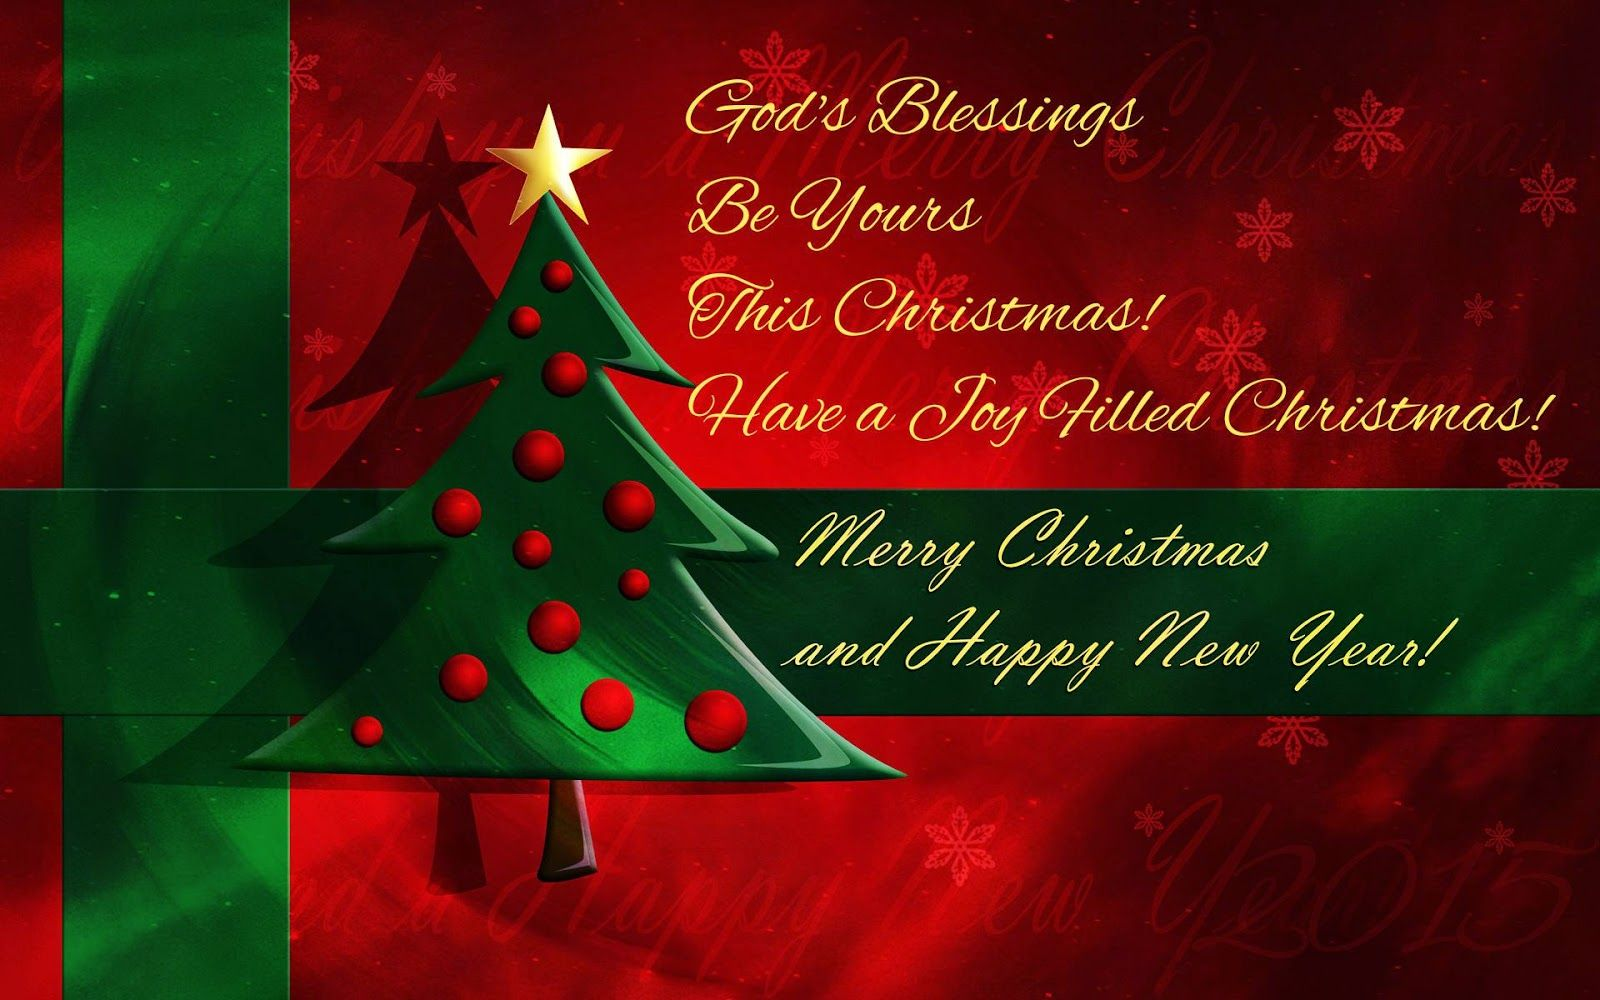 God blessings business christmas greetings quotes messages wishes god blessings business christmas greetings quotes messages wishes images wallpapers download christmas wishes 2017 merry christmas messages images reheart Choice Image